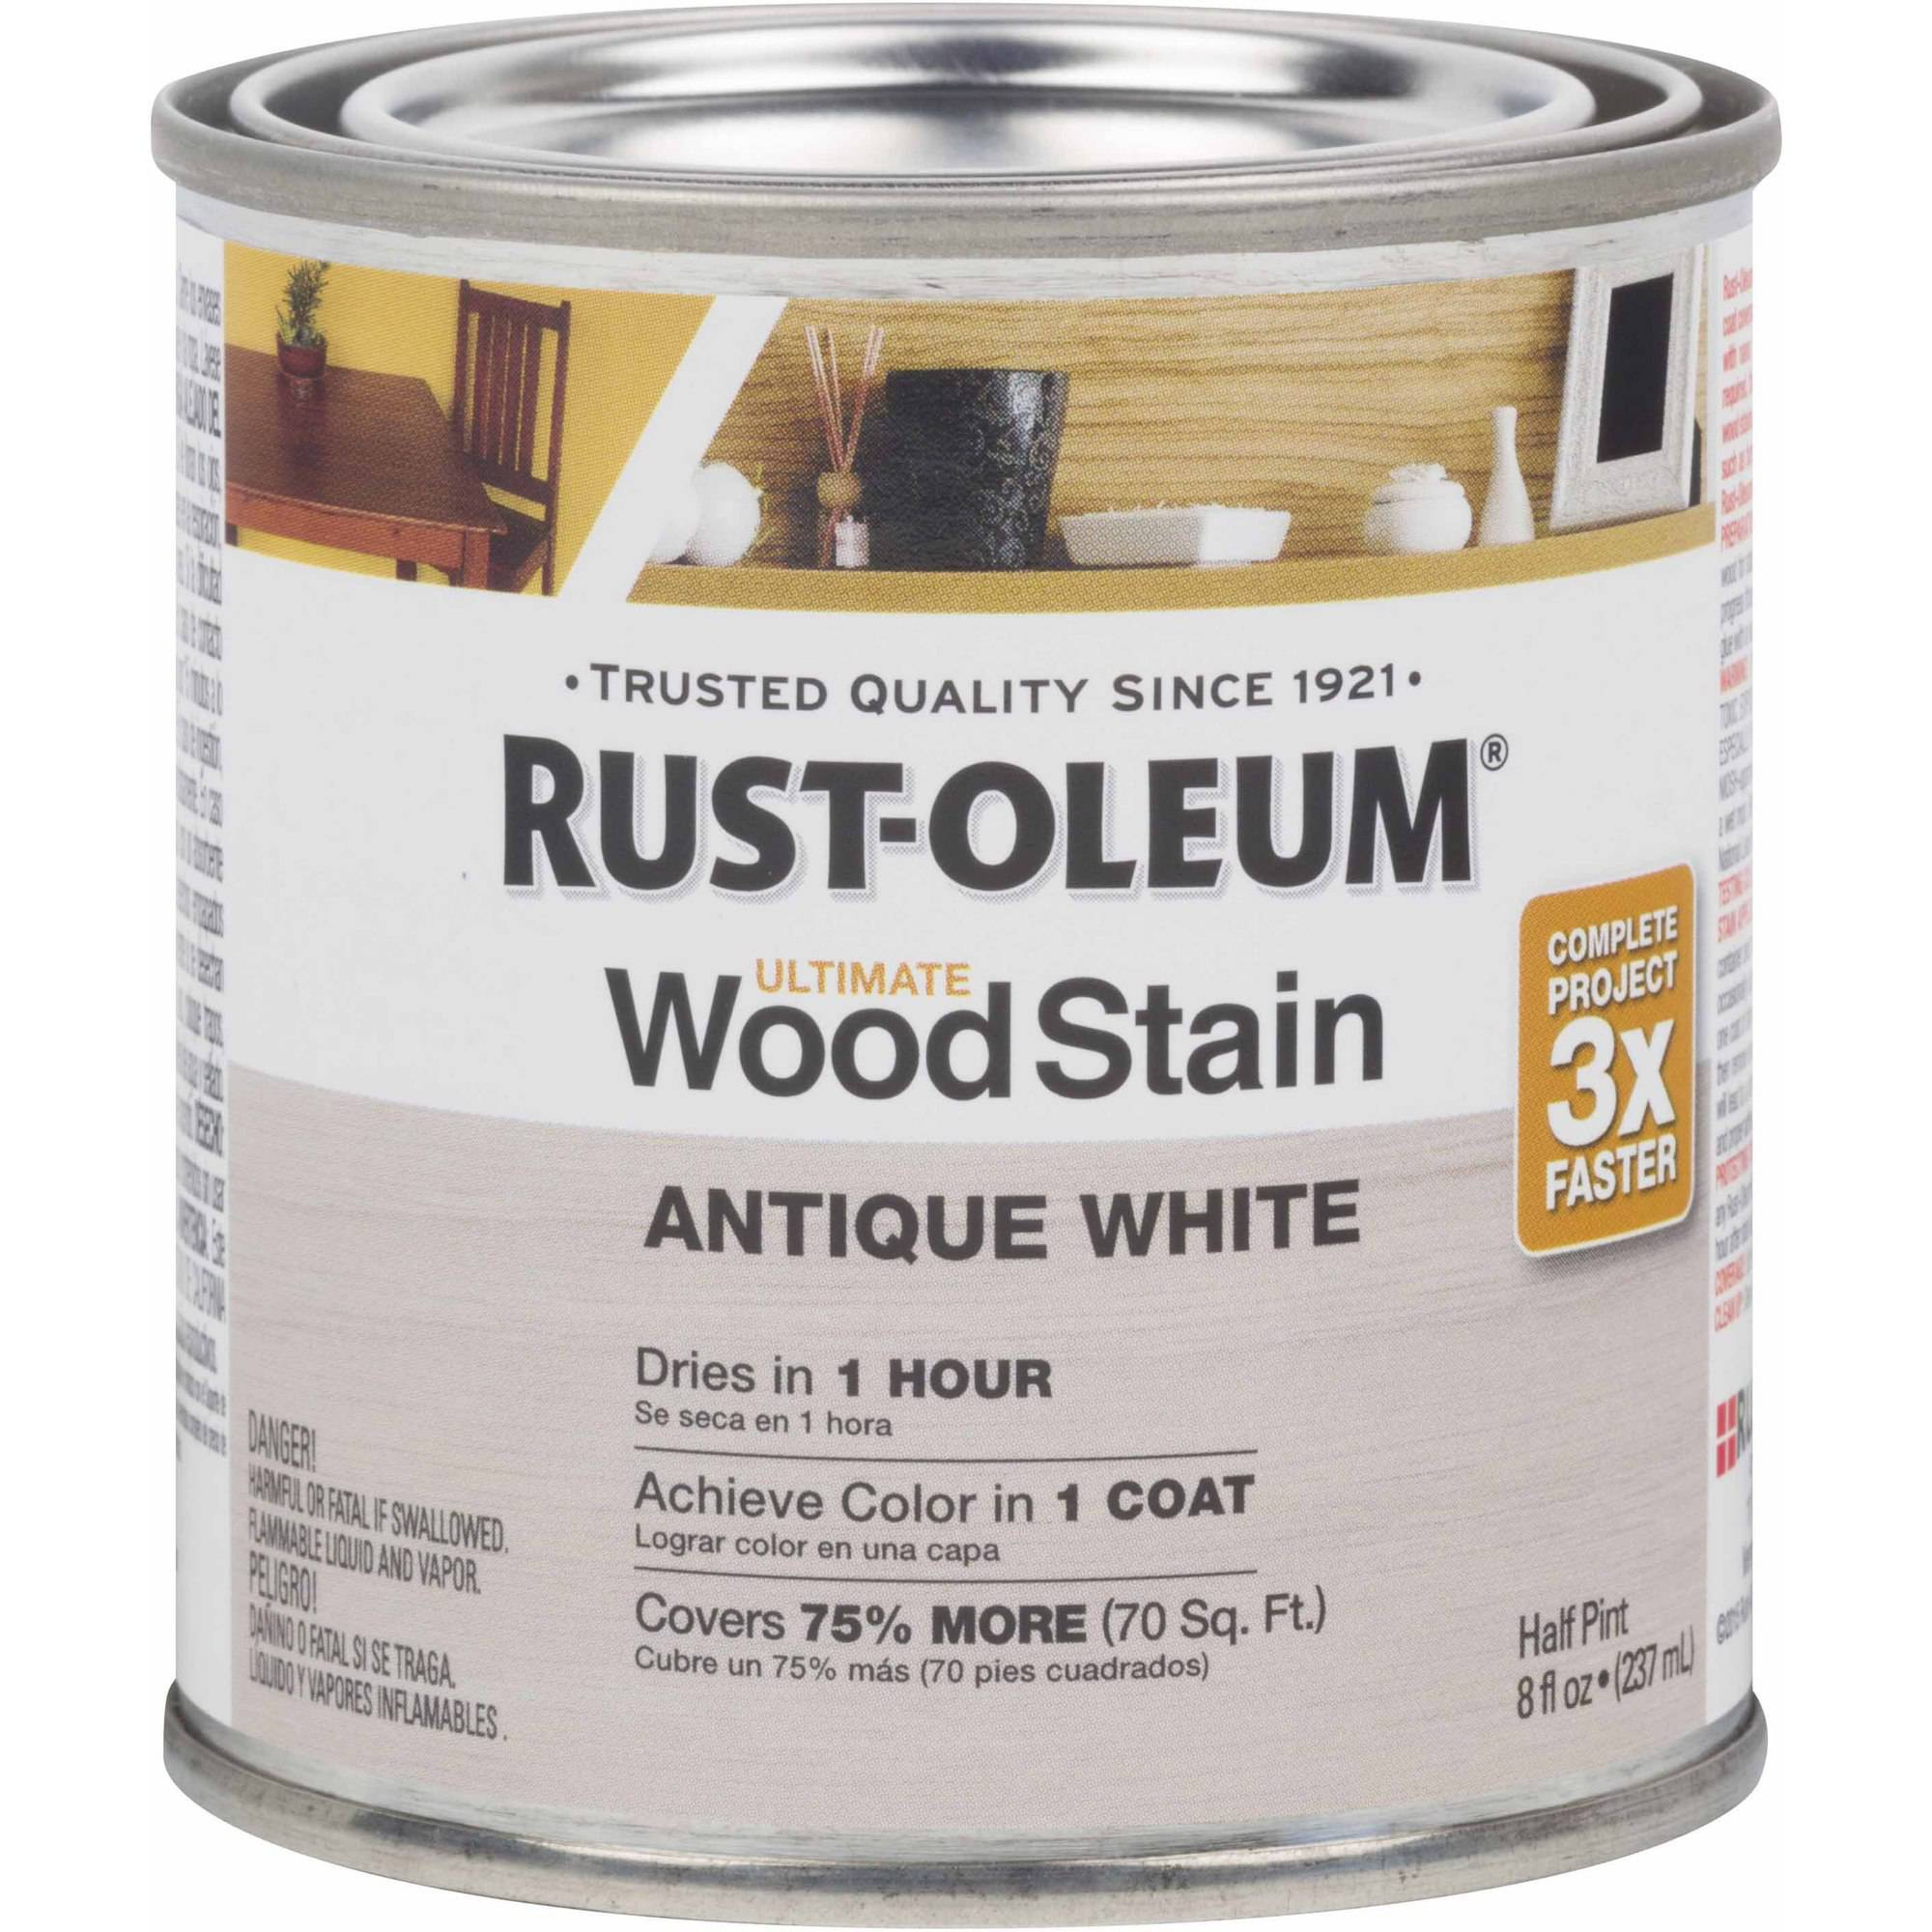 Exceptionnel Product Image Rust Oleum Ultimate Wood Stain Half Pint, Antique White